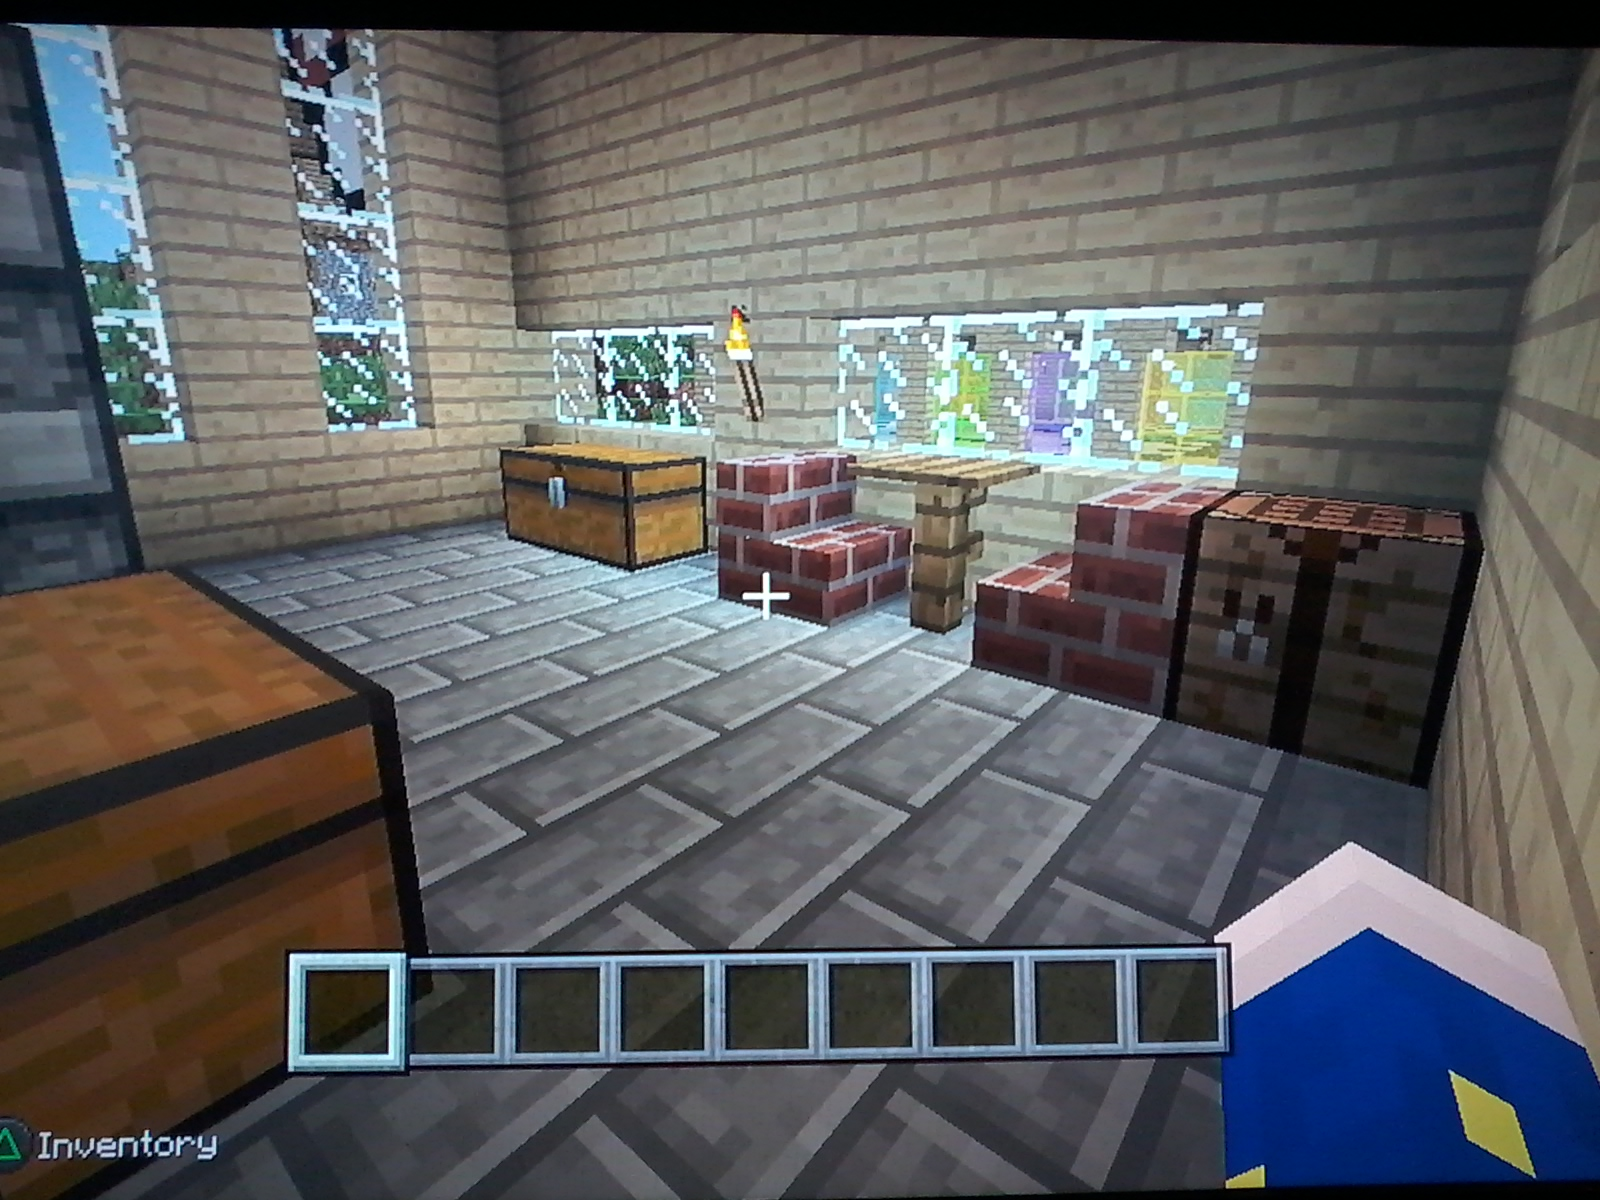 & My Minecraft on PS3: \